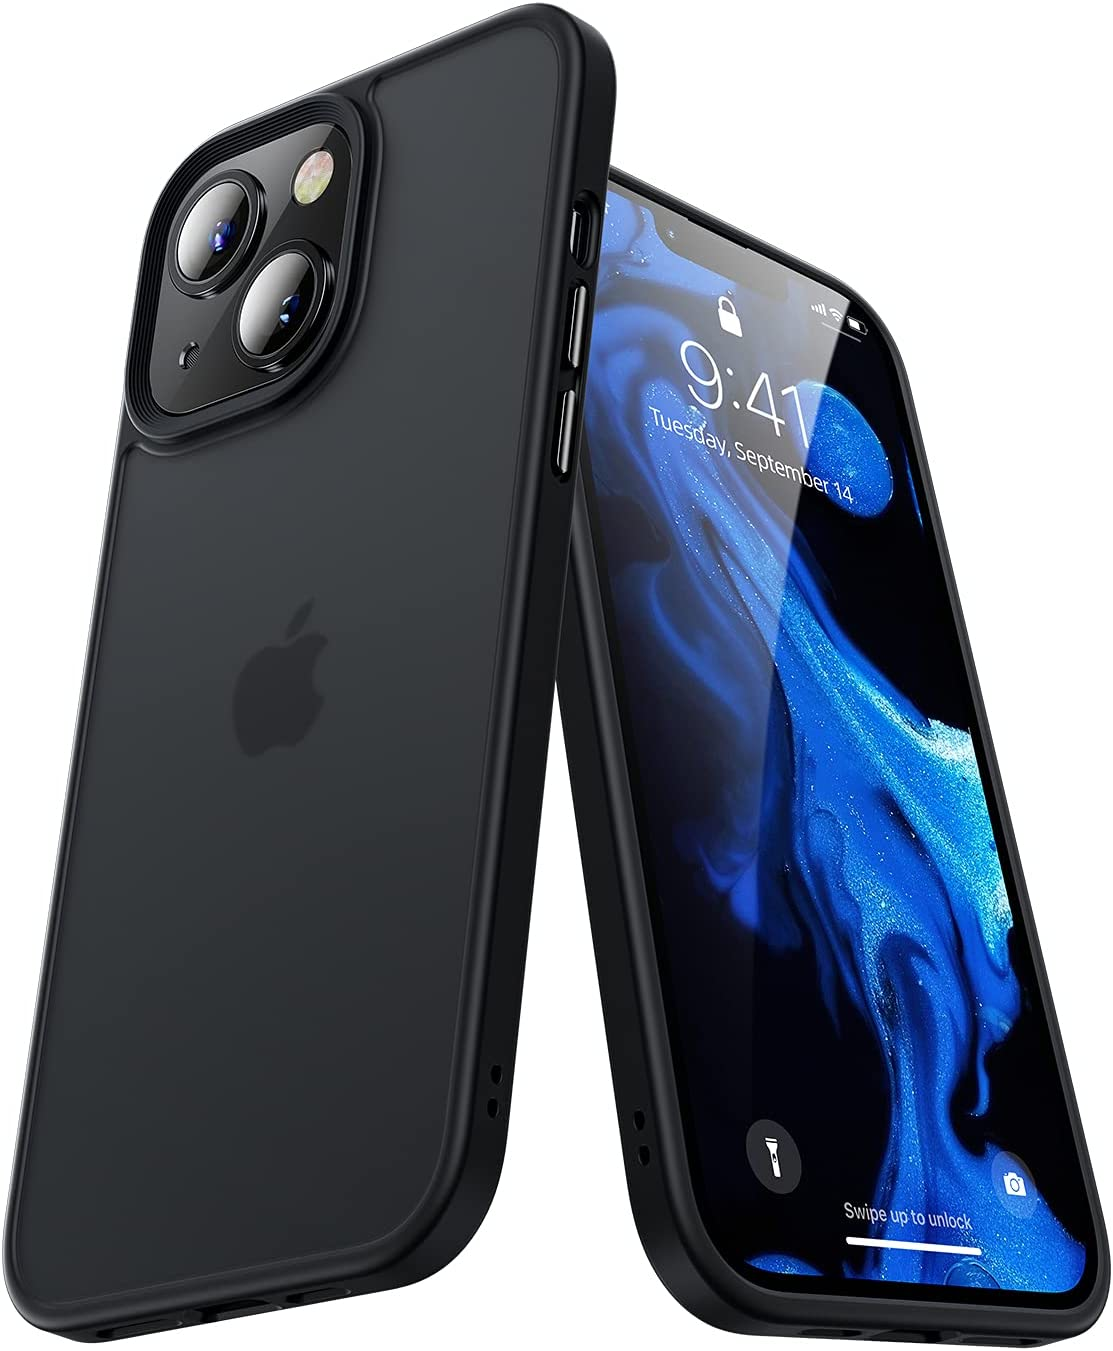 BENKS Compatible for iPhone 13 [Military Grade Drop Armor Material], Translucent Matte PC with Soft Edges, Shockproof Phone Case Designed for iPhone 13 6.1inch (2021),Black